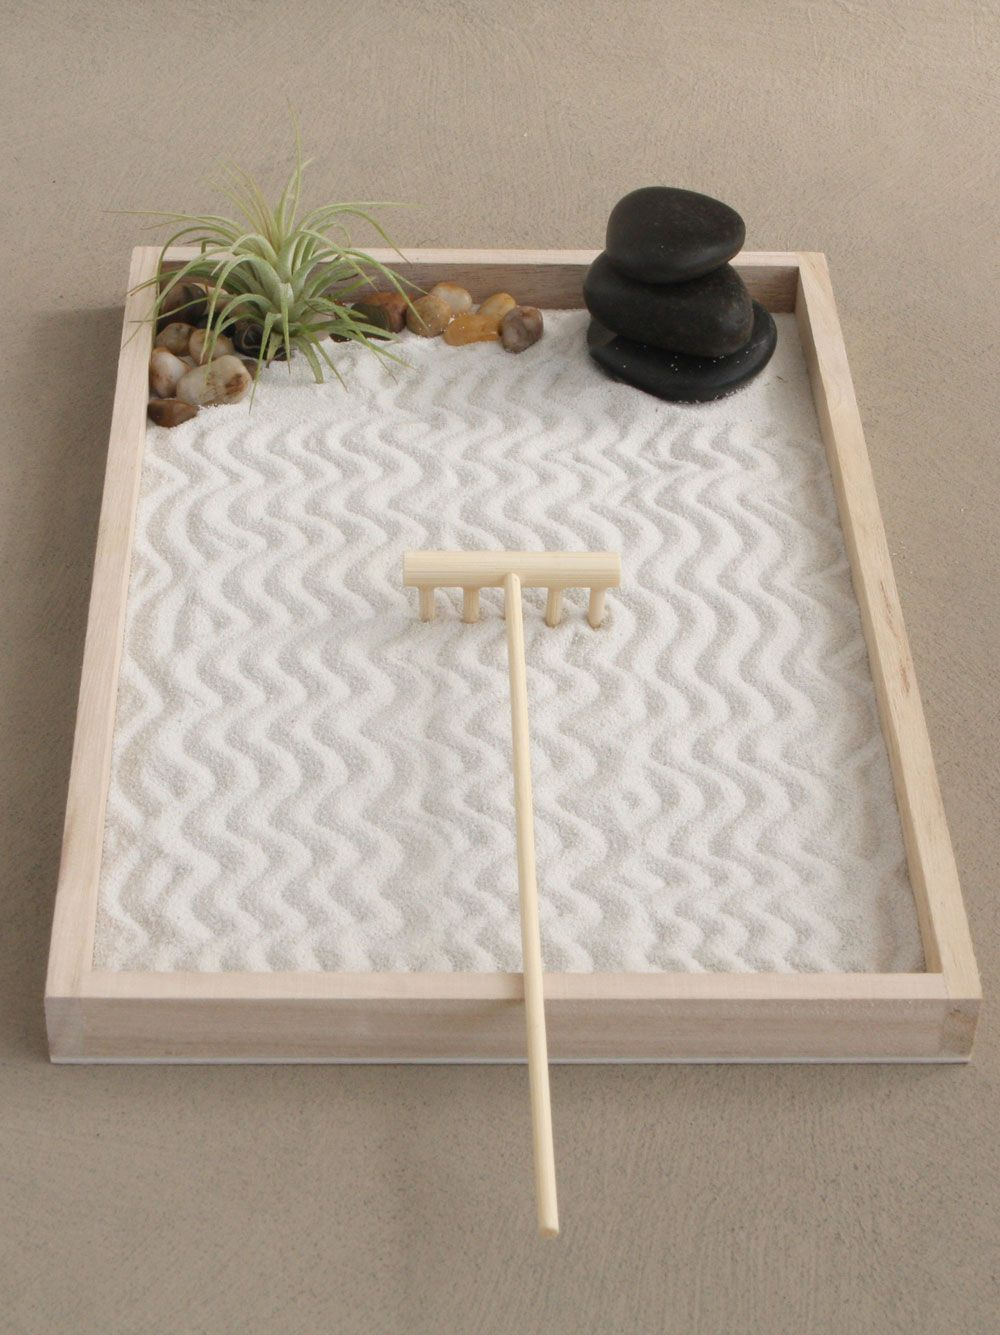 Rock Cairn Zen Garden Zengardens Home Pinterest Mini Zen